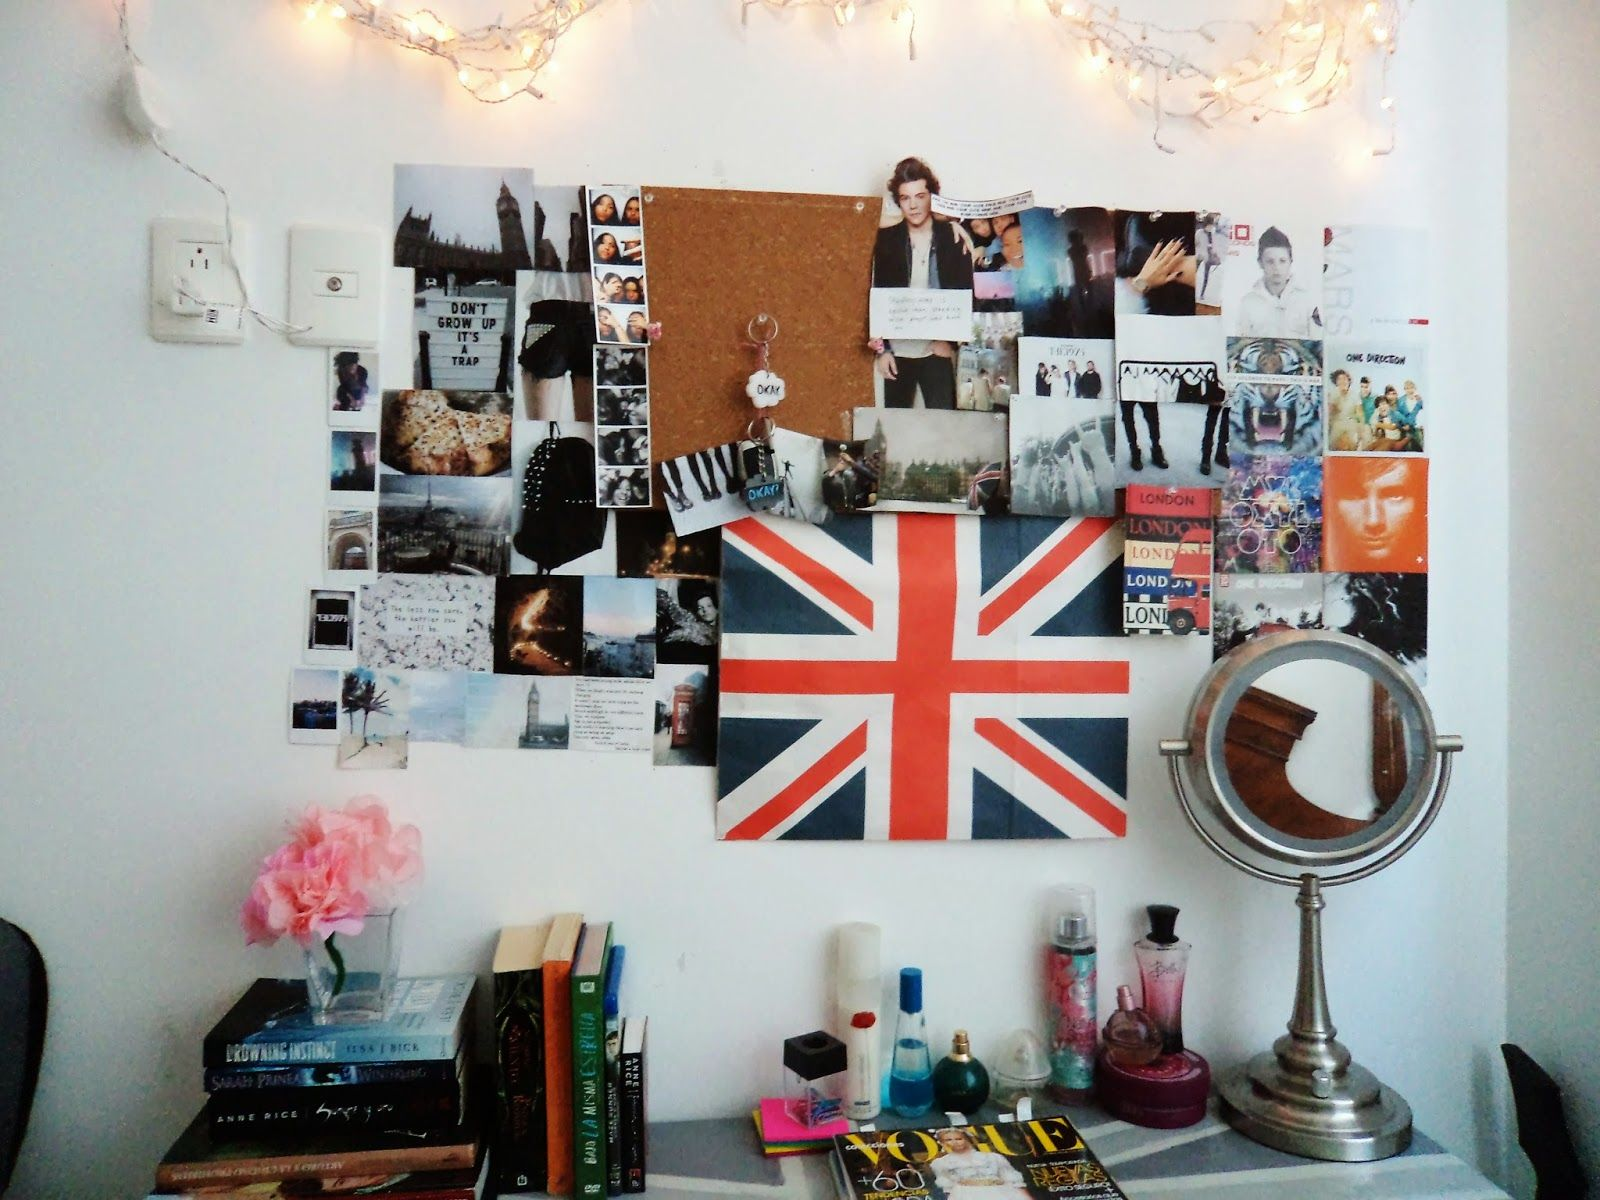 Diy decora tu cuarto estilo tumblr f cil y sin gastar for Zimmerdekoration diy